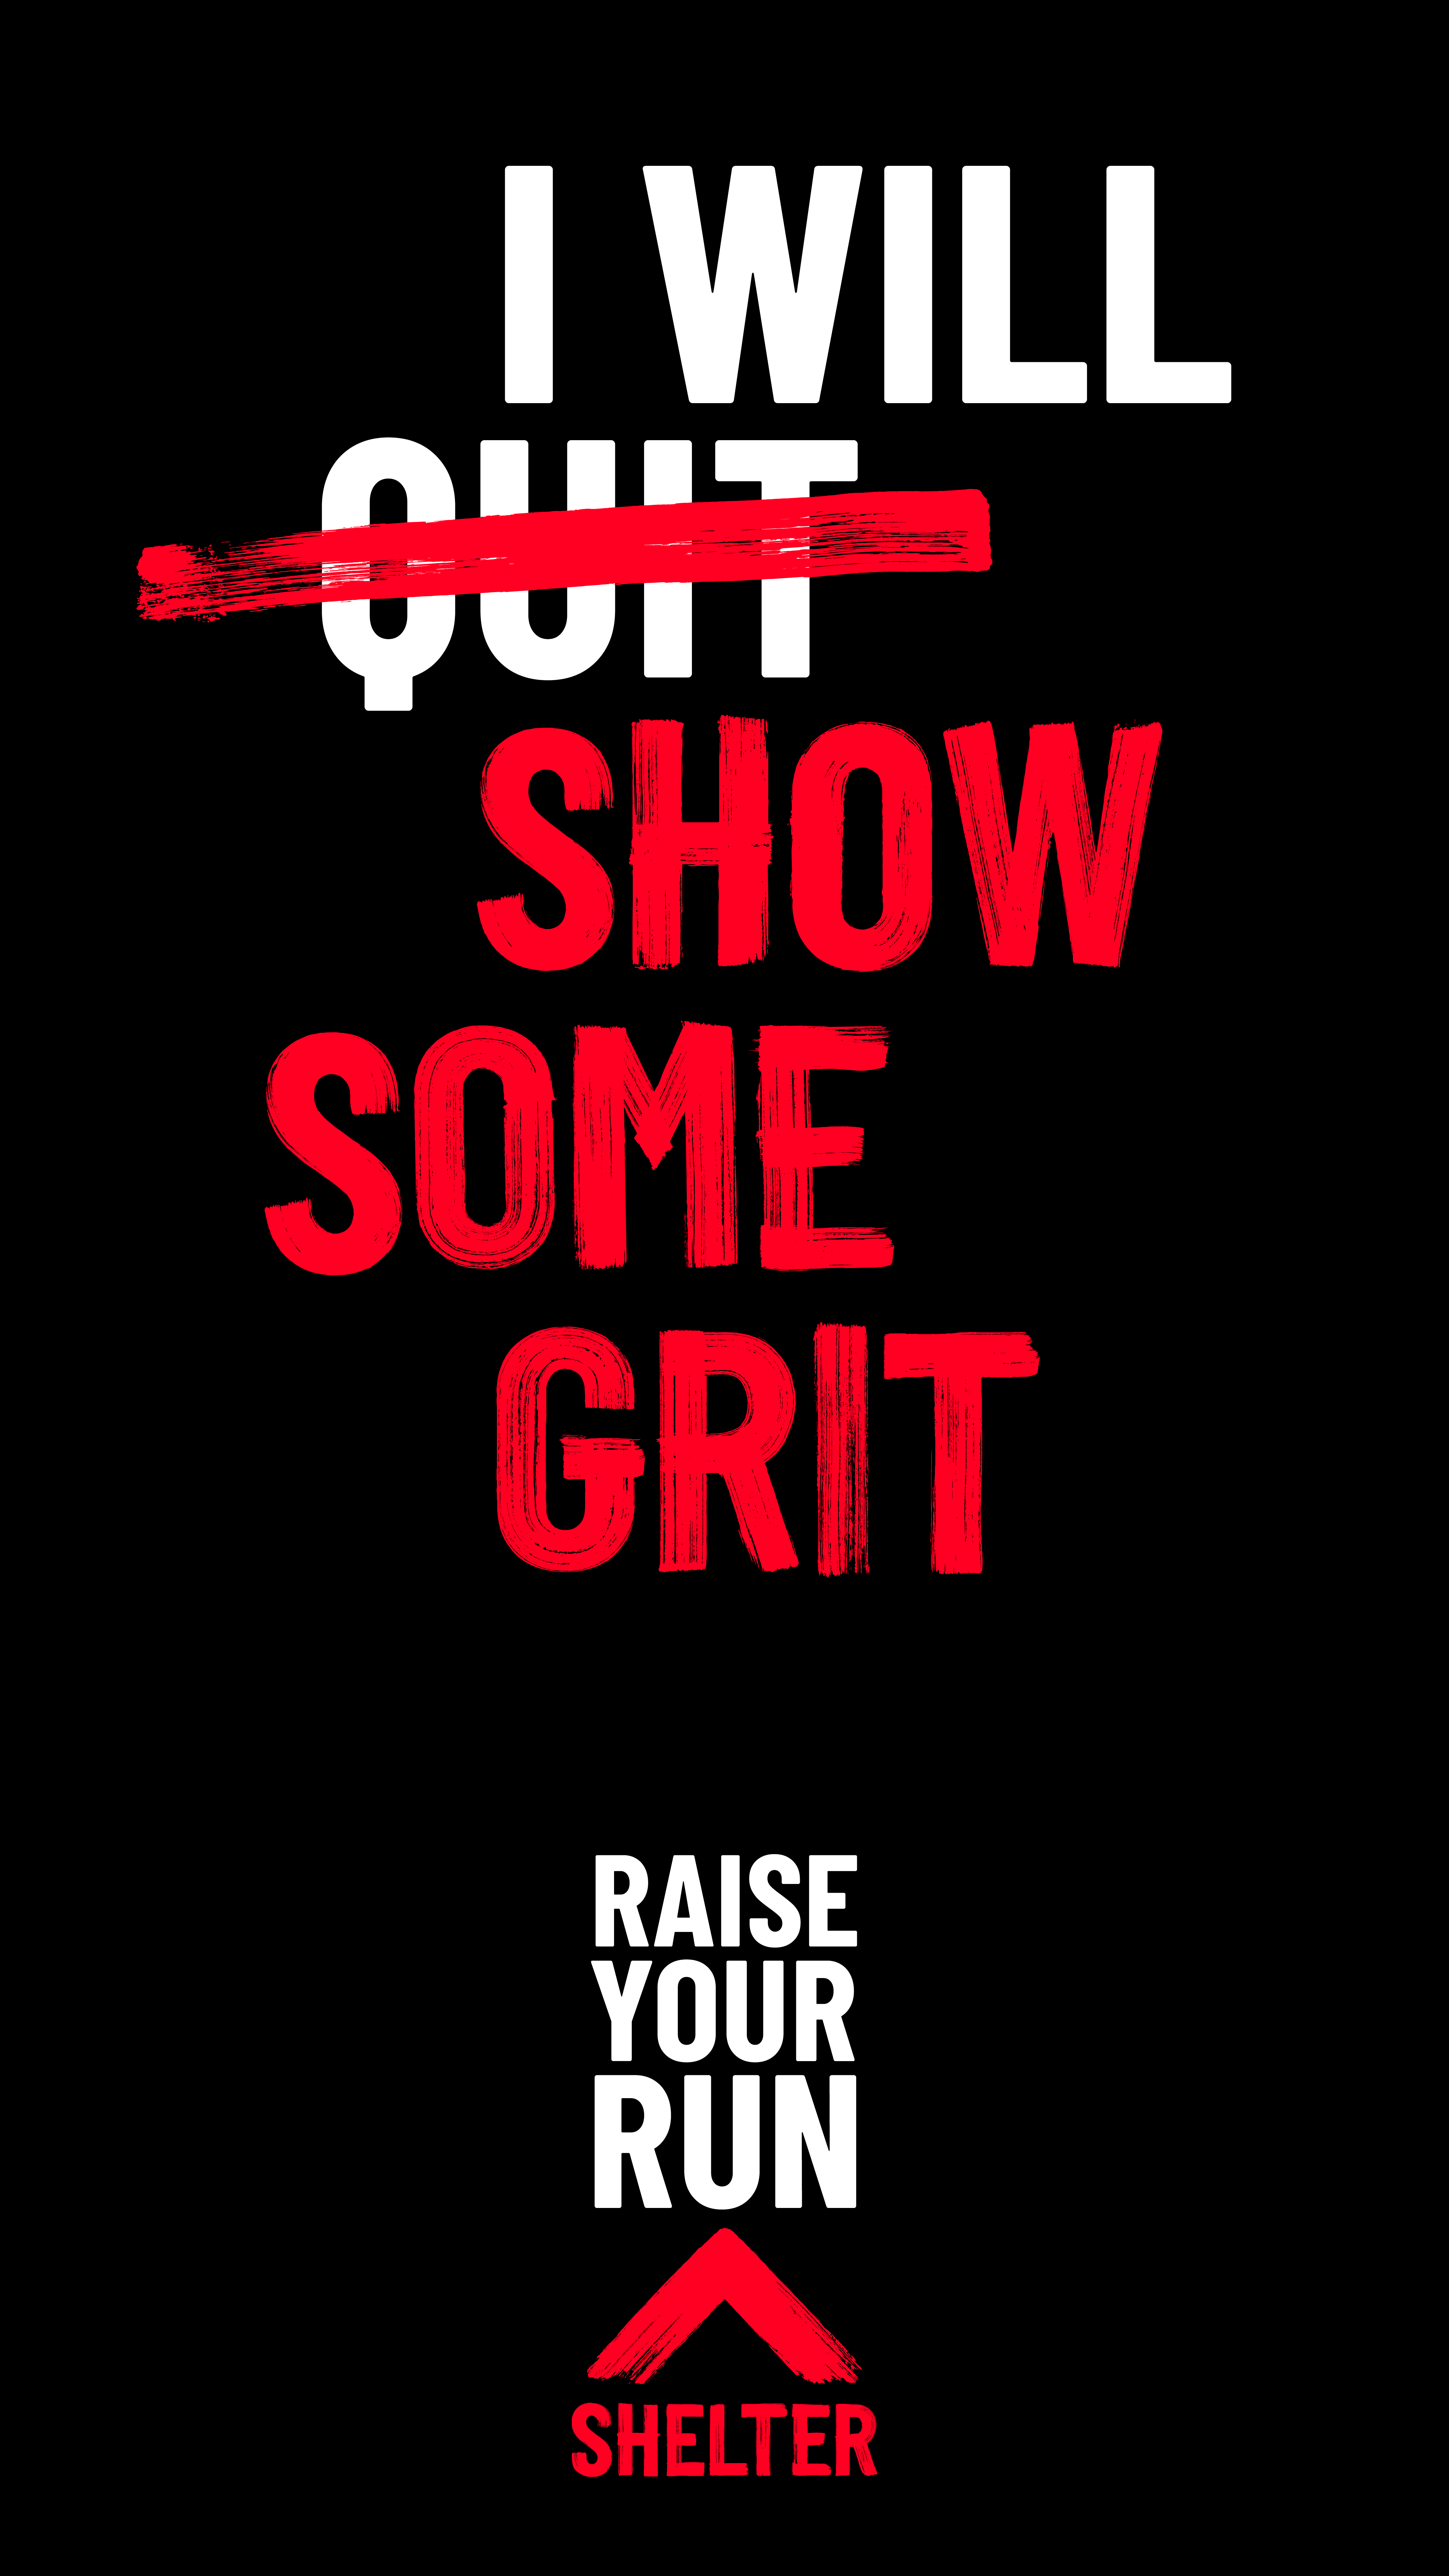 'I will show some grit' words on black background